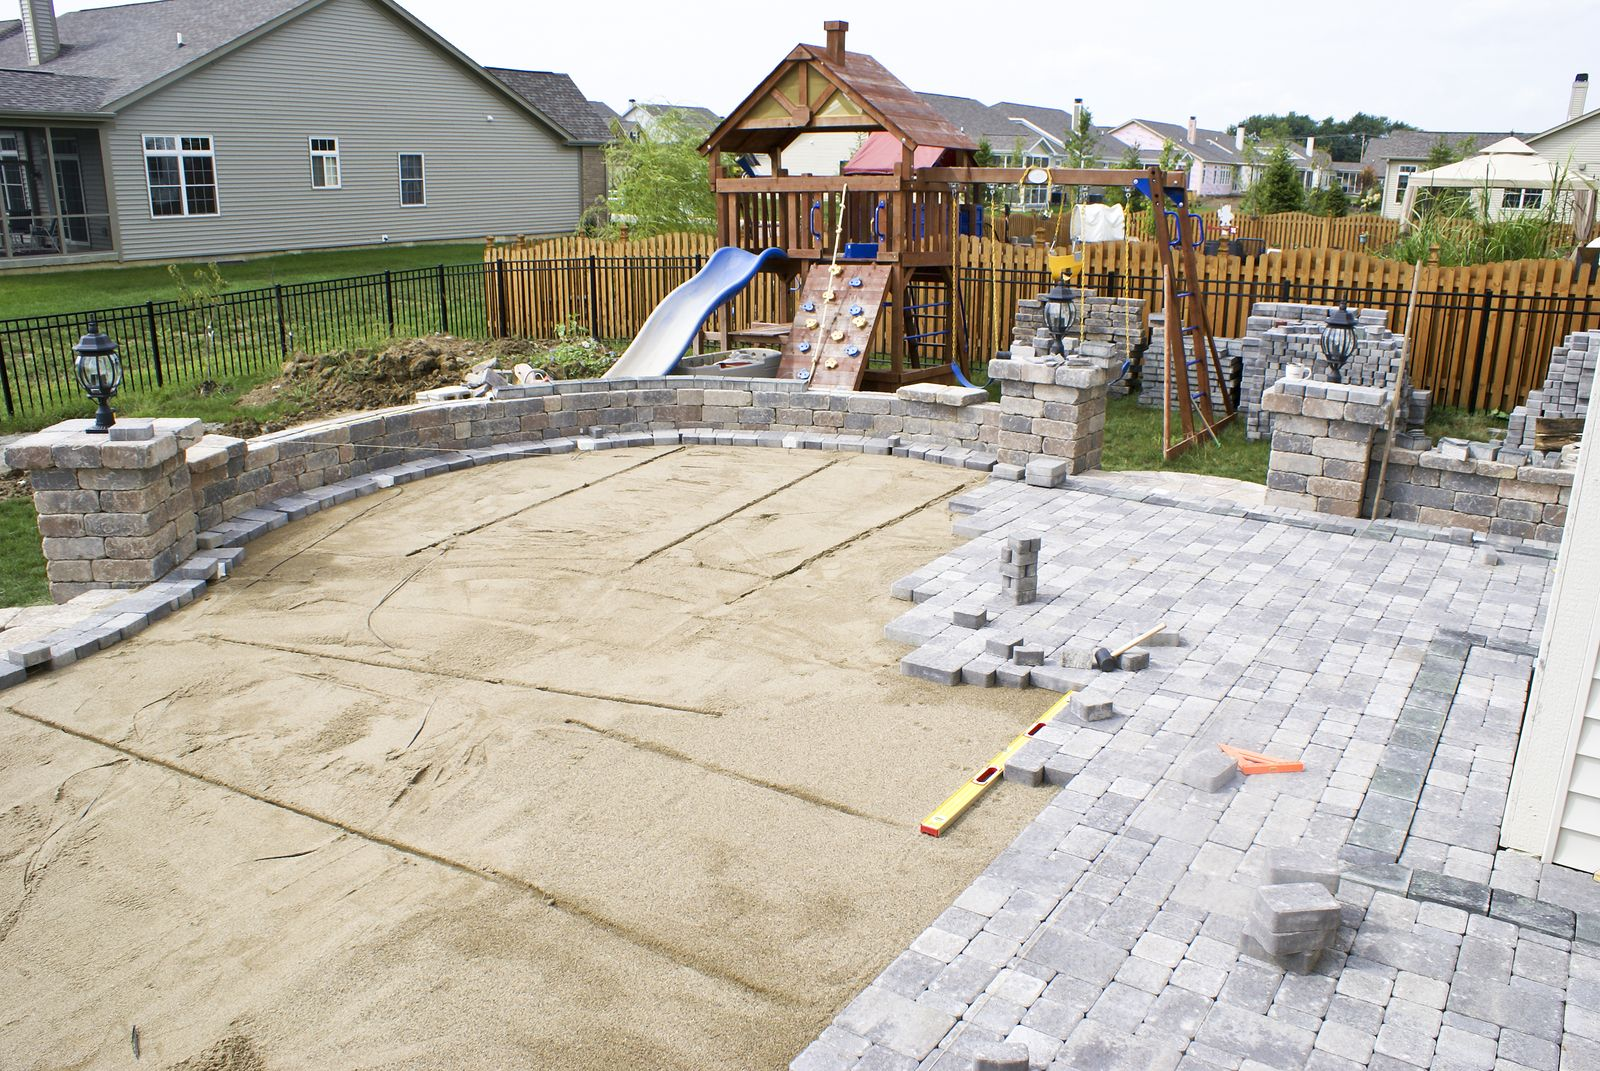 Stone Patio Ideas Backyard full image for trendy backyard patio ideas stone 87 small backyard paver patio ideas brick and Patio With Pavers Designs Complete Your Omaha Backyard With Paver Patios